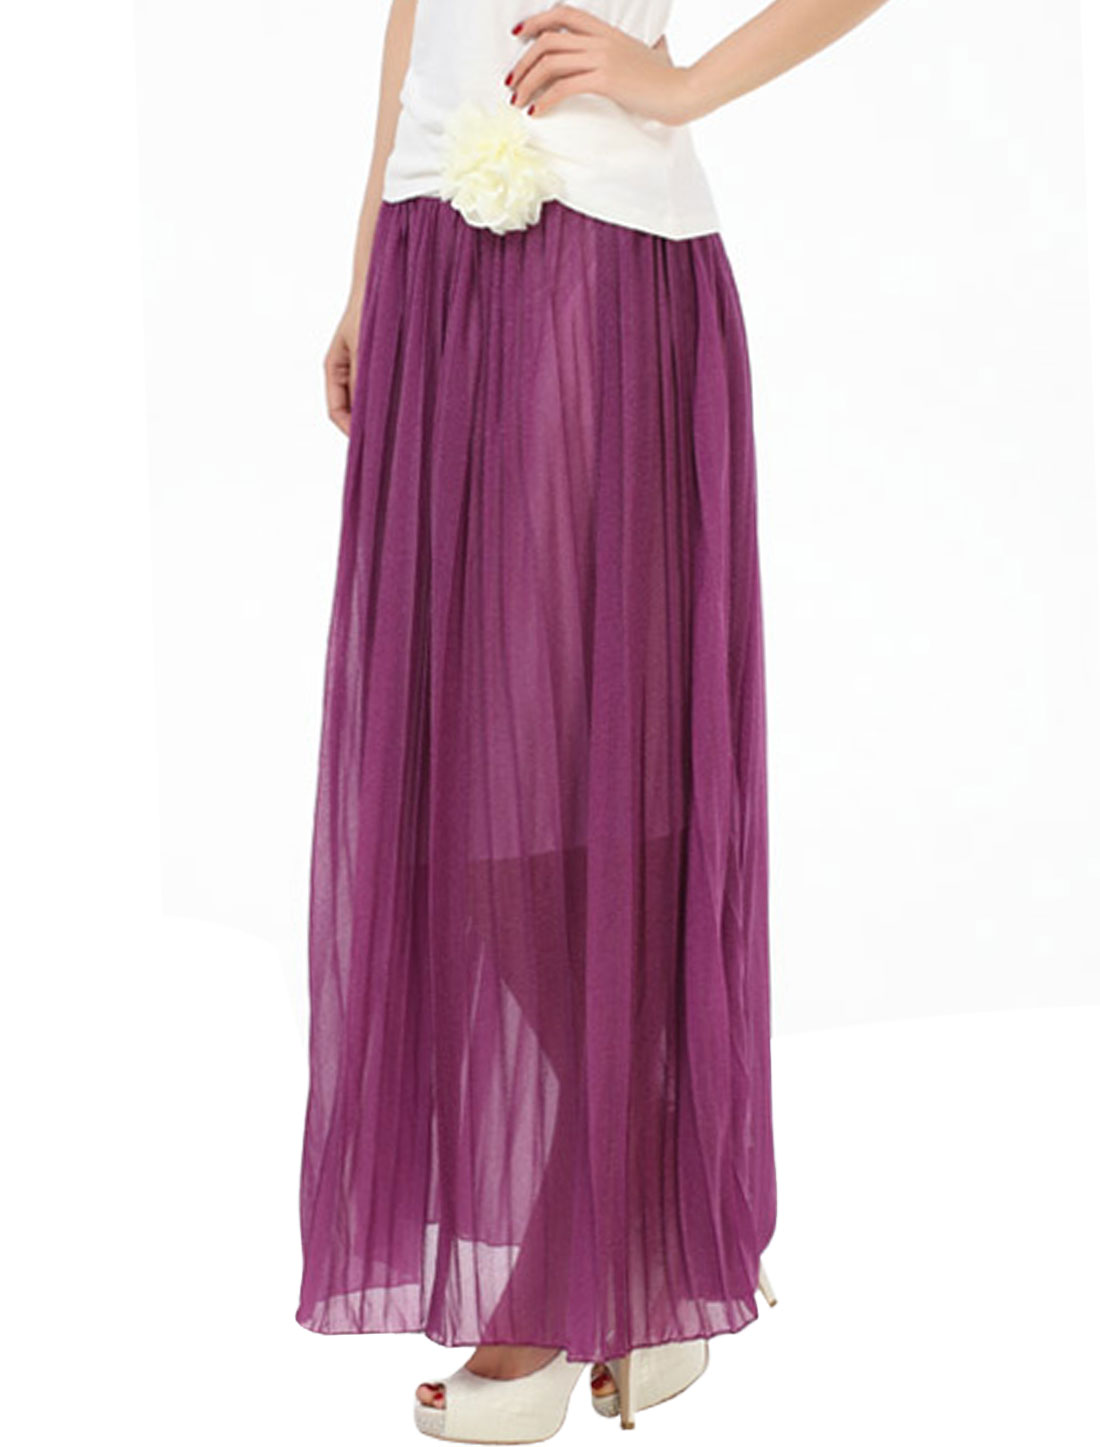 Lady Pleated Removable Flower Decor Lining Skirt Purple S